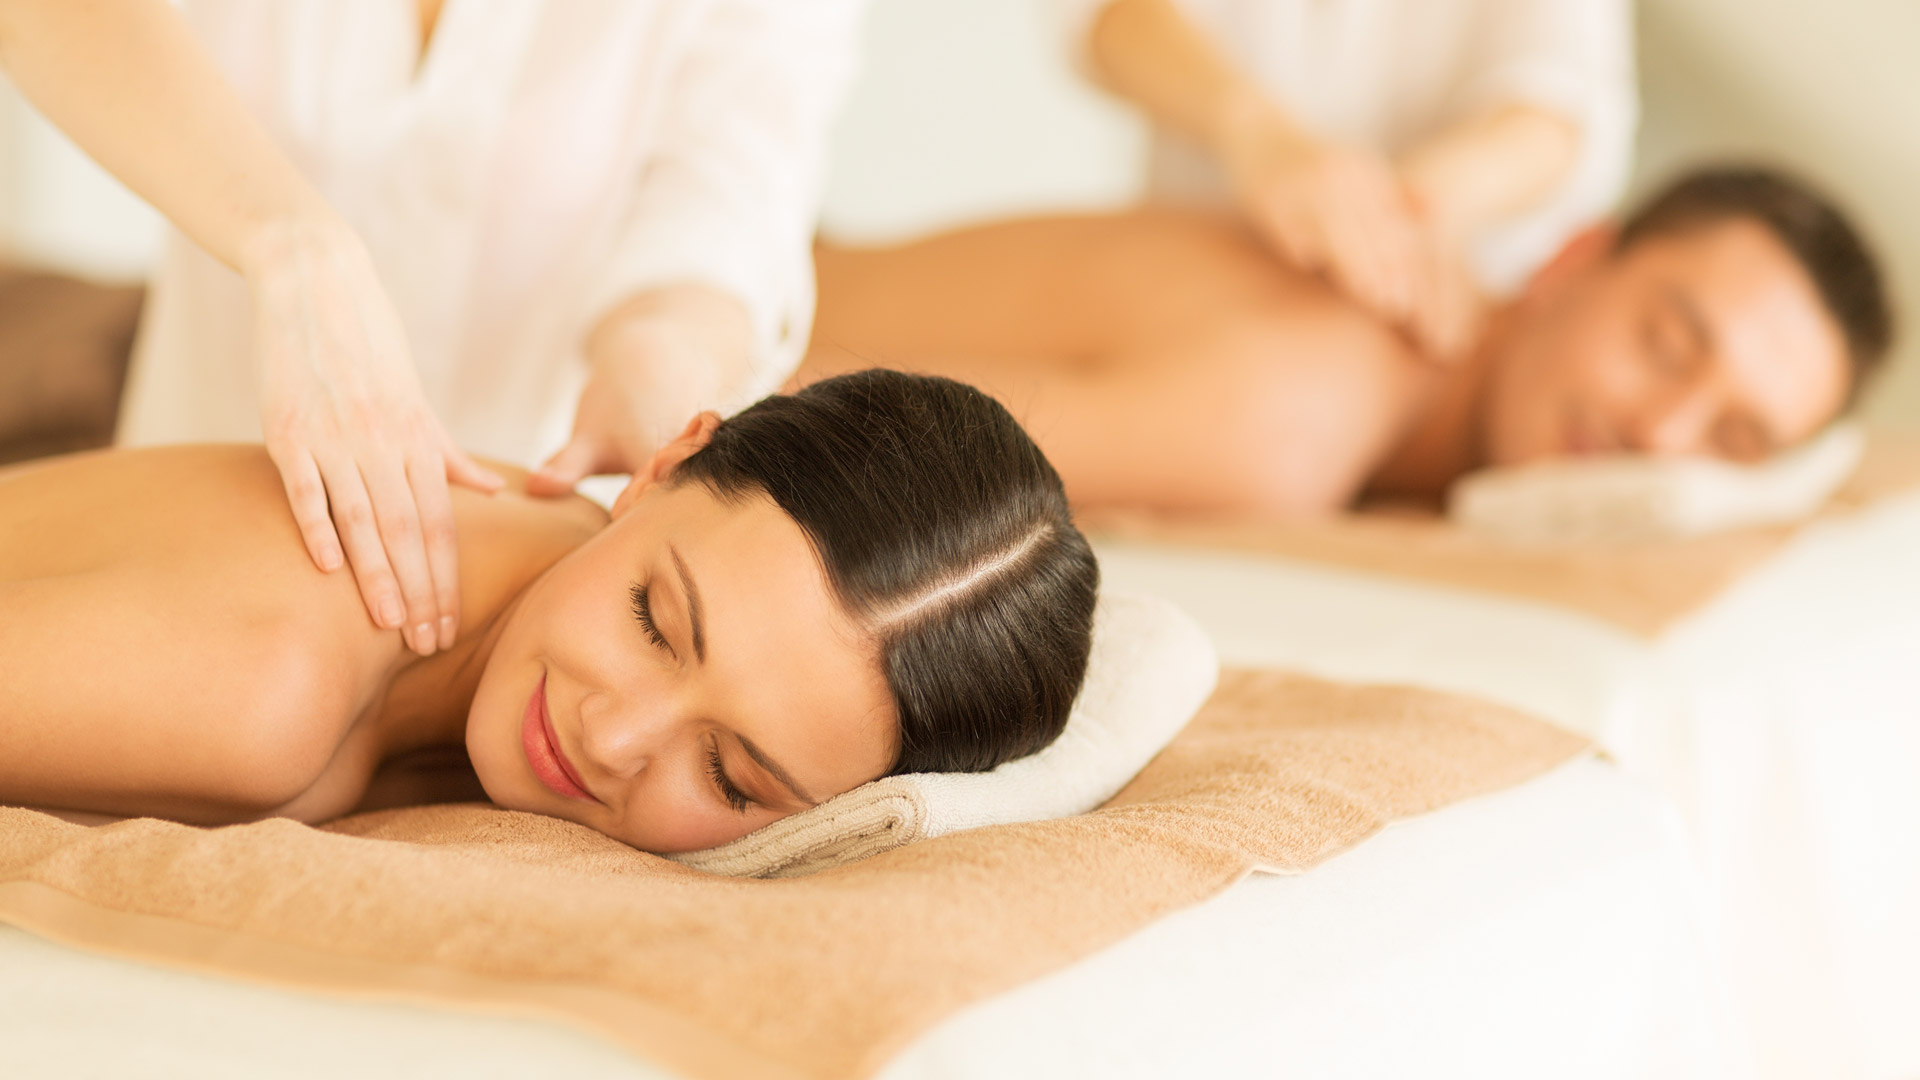 Things to consider if you are interested in getting maximum benefit from your massage.